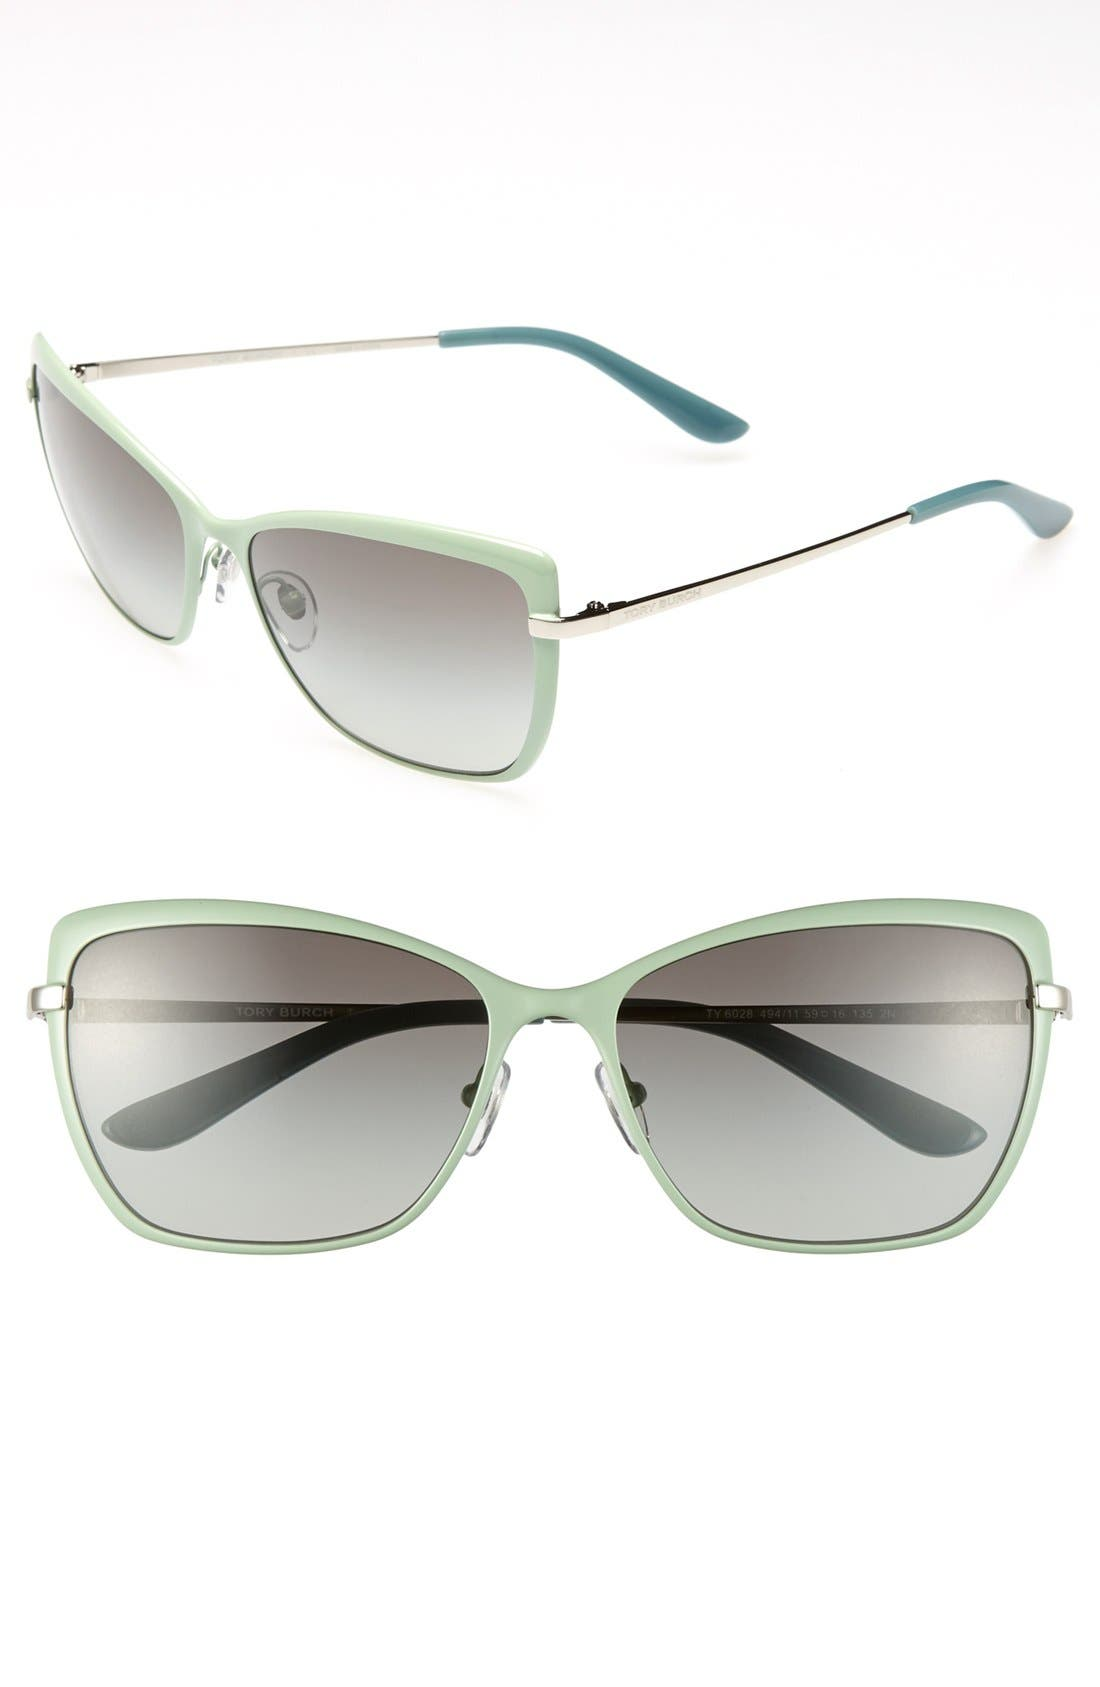 Alternate Image 1 Selected - Tory Burch 59mm Retro Sunglasses